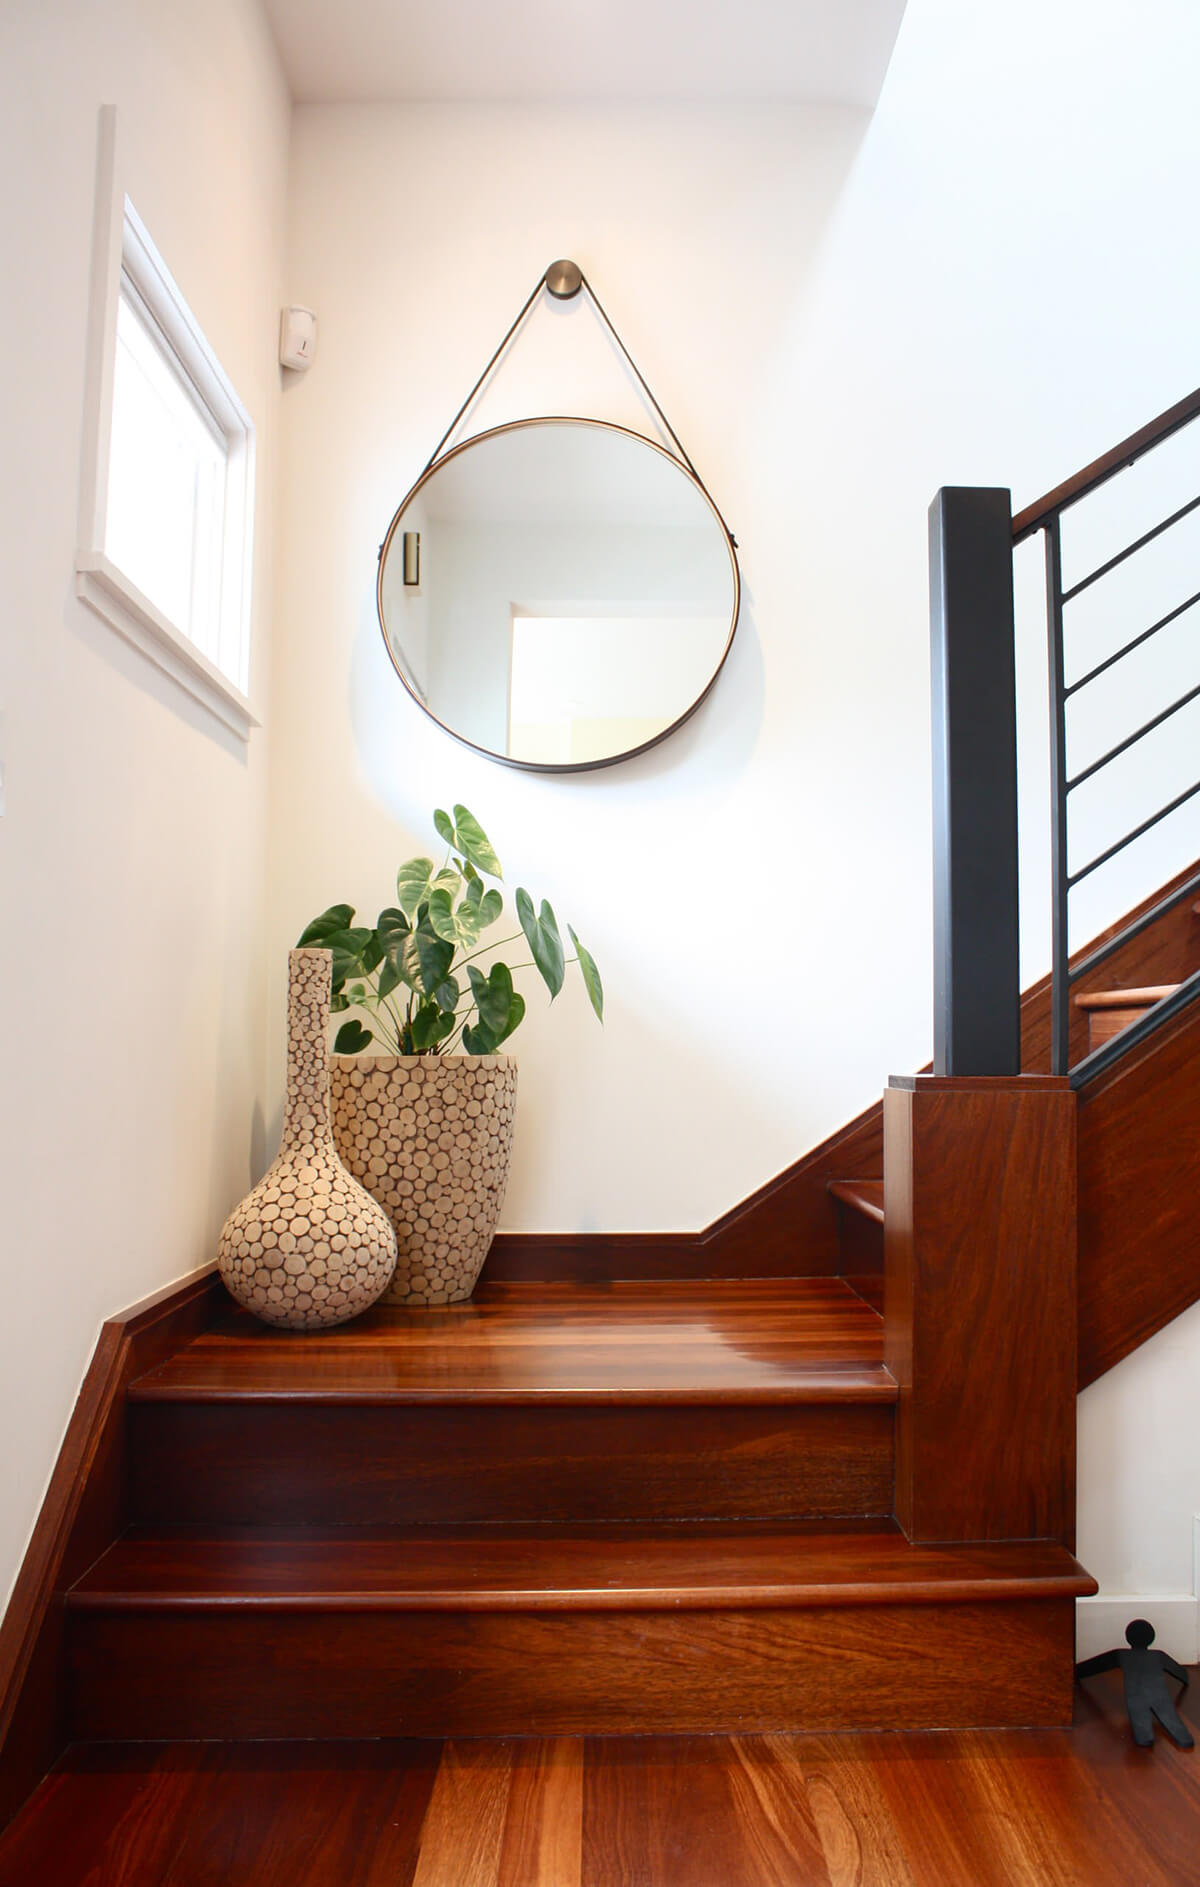 Stairway Decorating Idea for Minimalists